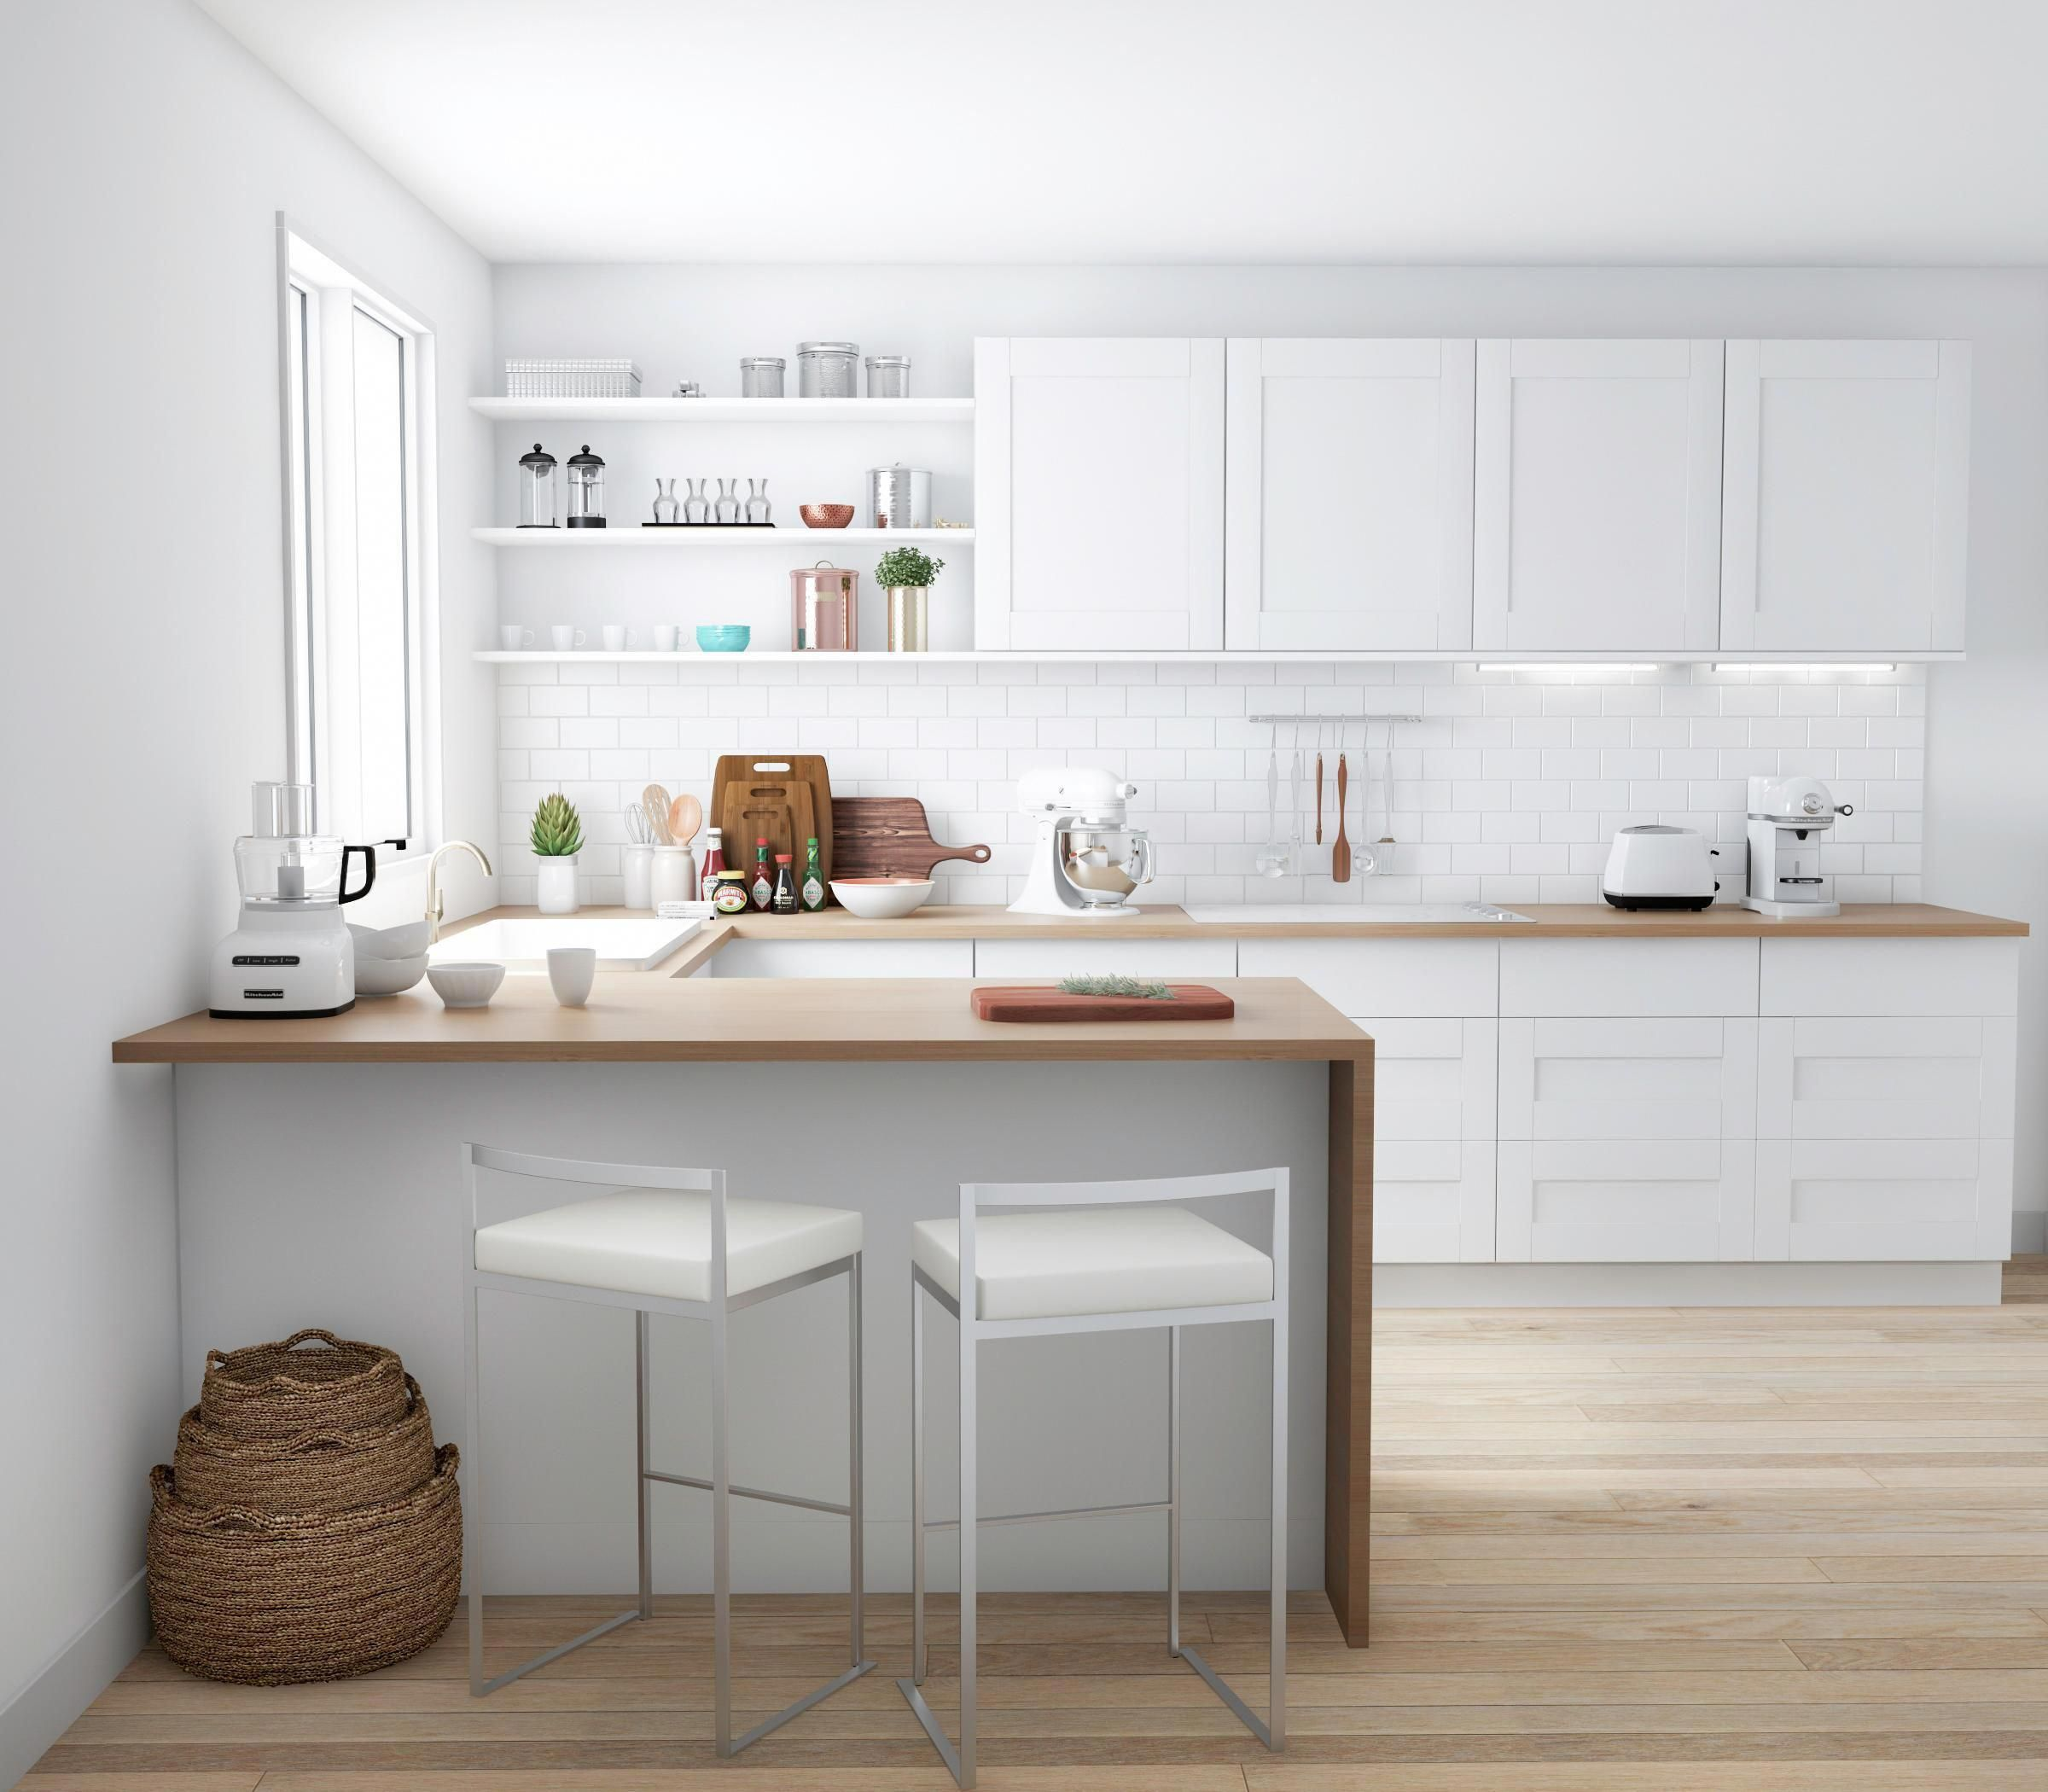 Country Kitchen Ramona: Ever Wondered How To Get That Modern Scandinavian Look